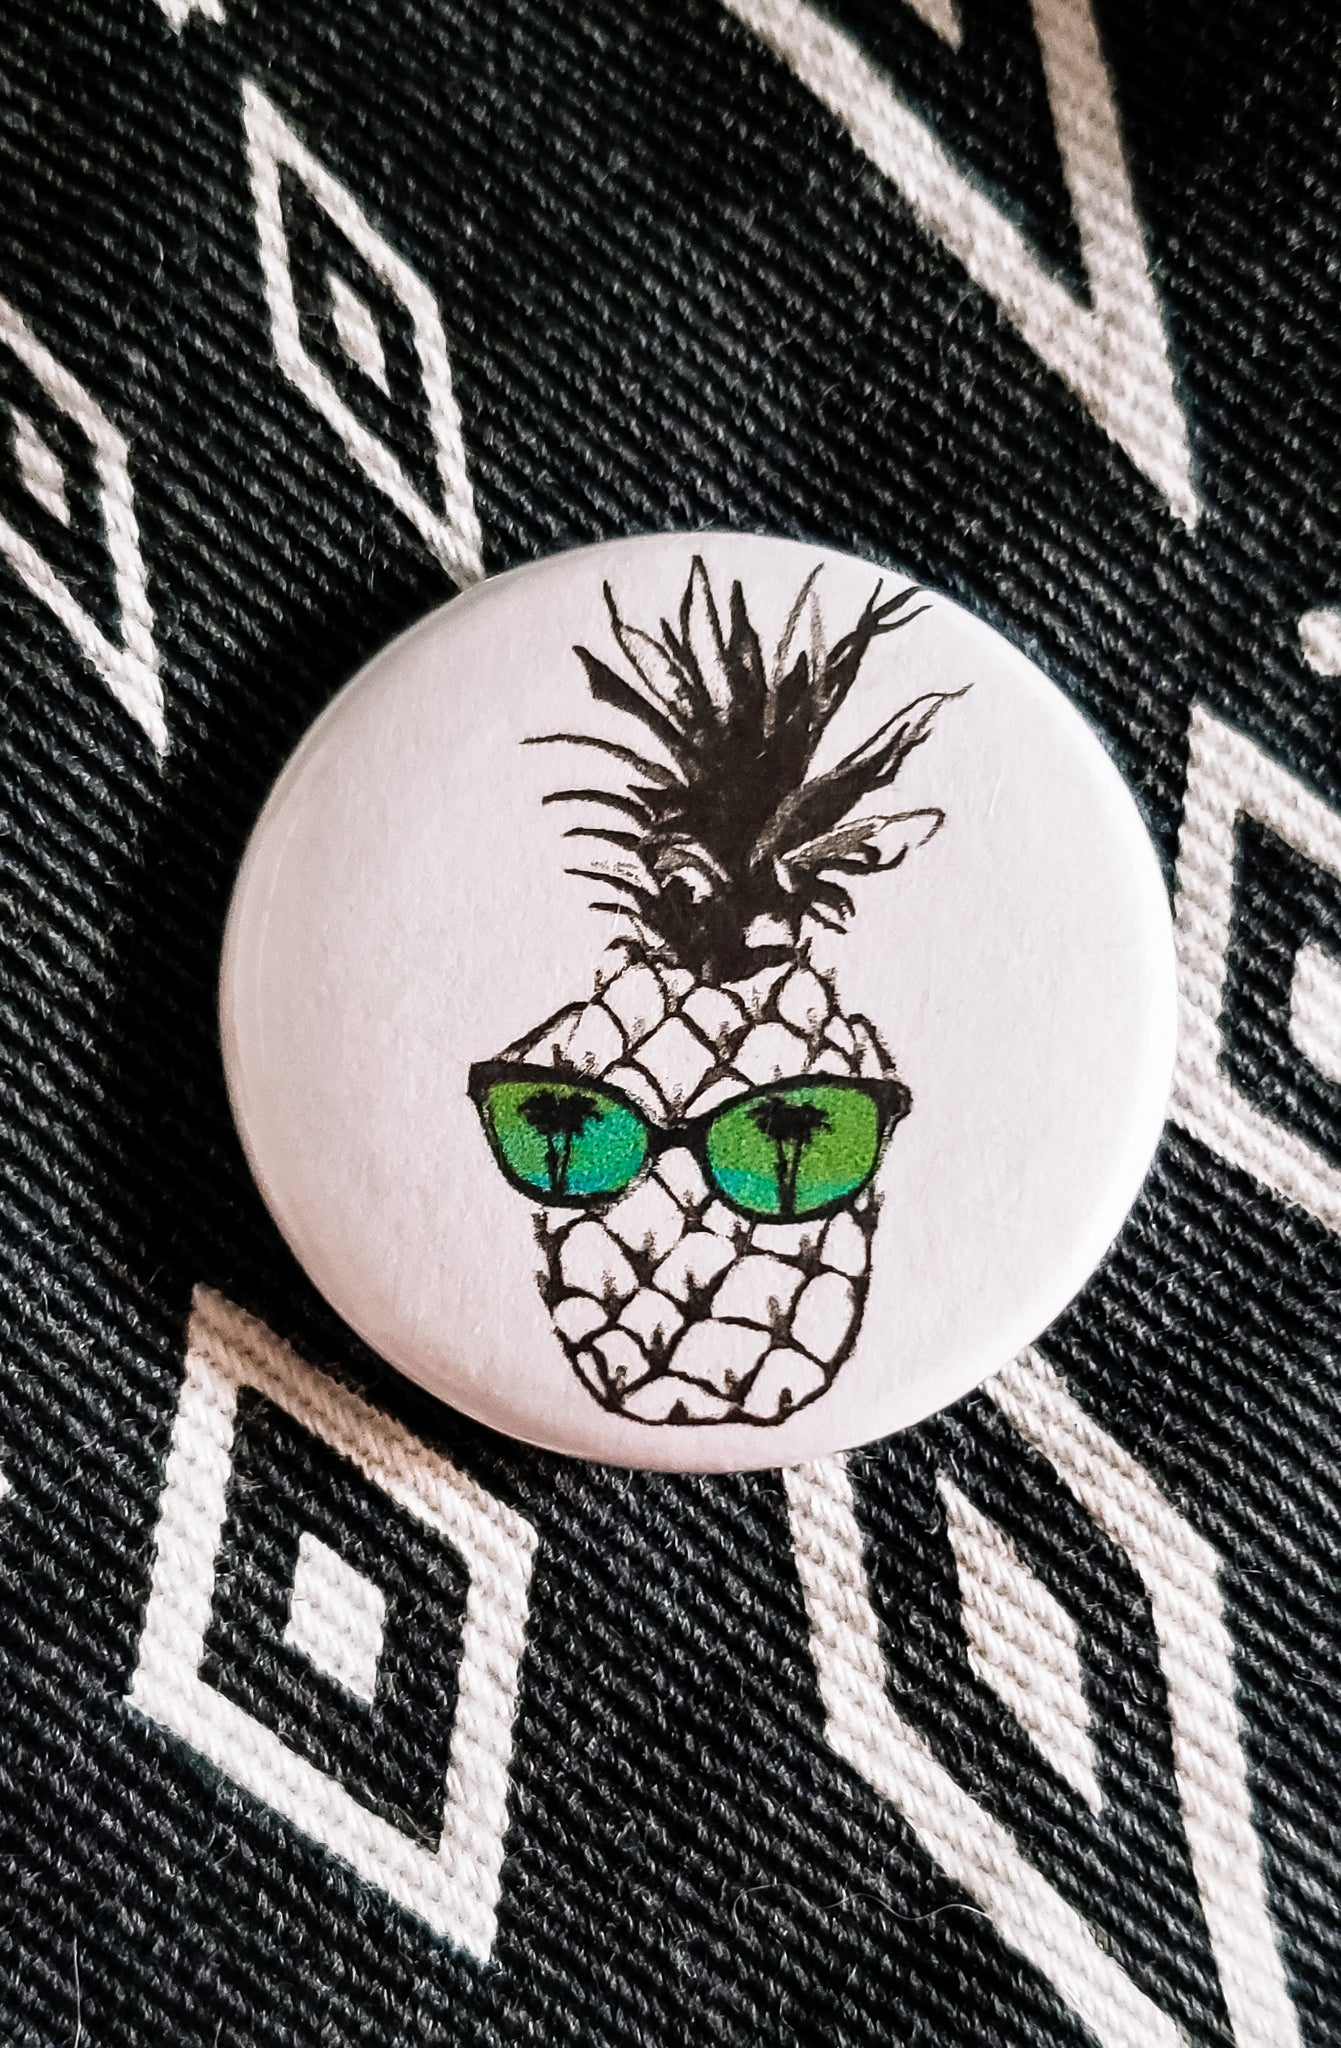 Hot Pineapple in Green Button Pin